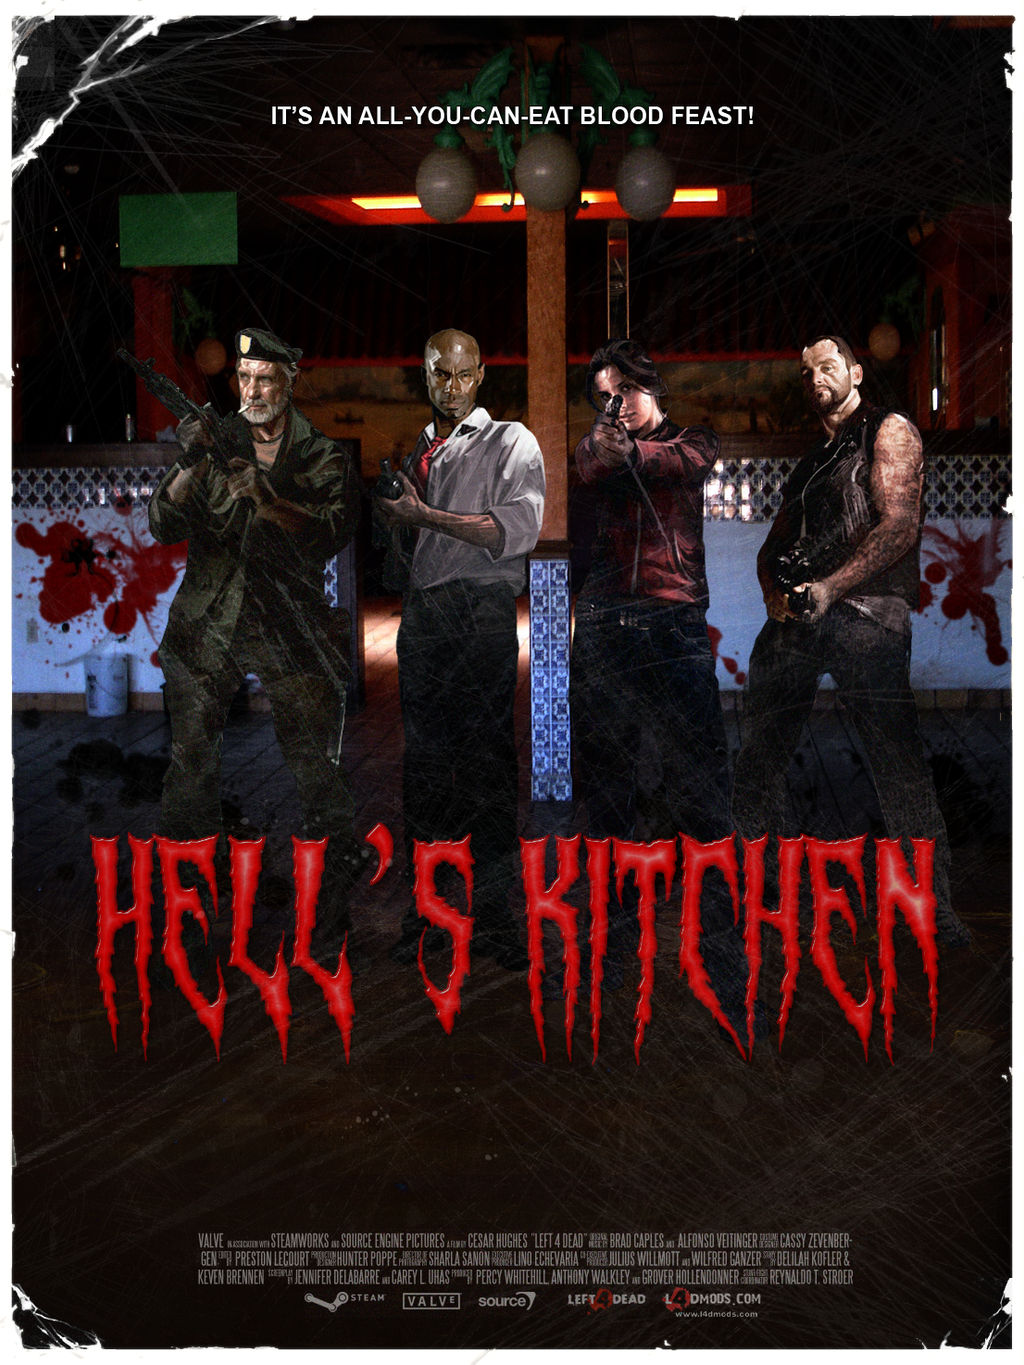 Left 4 Dead Campaign Poster: Hell's Kitchen by